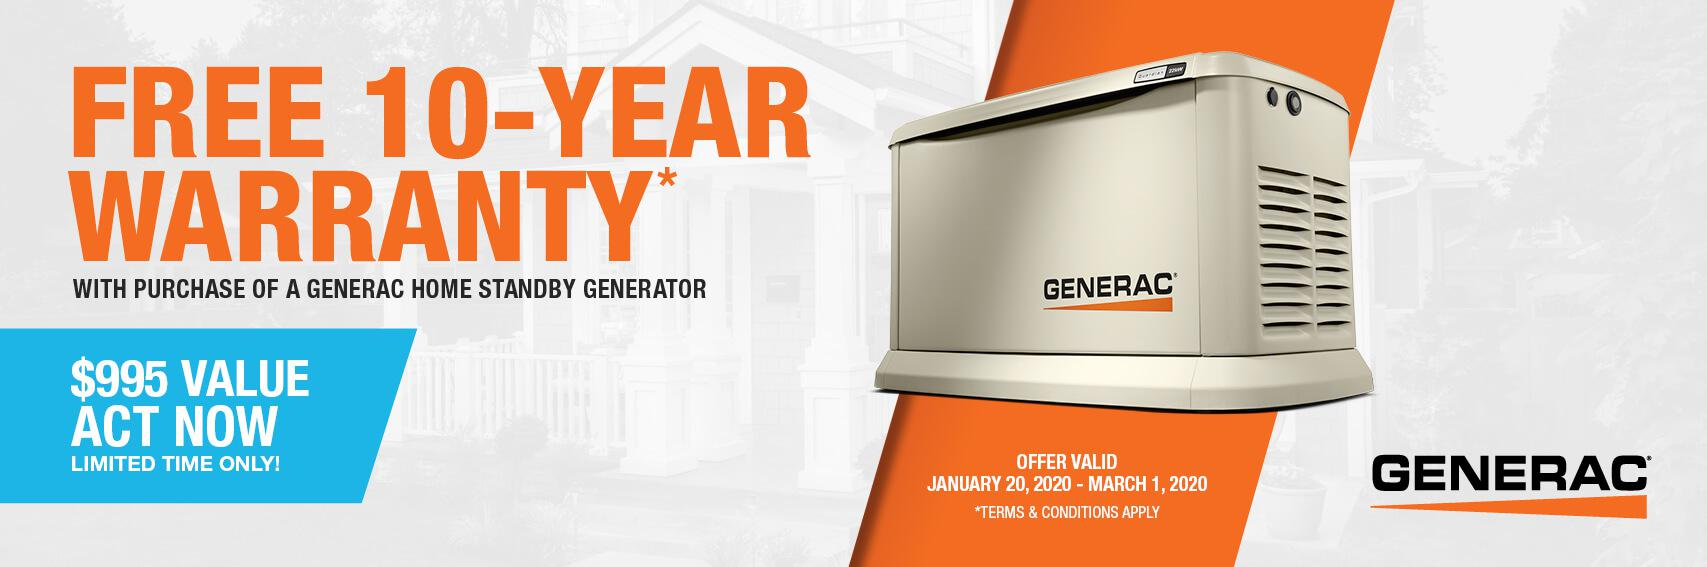 Homestandby Generator Deal | Warranty Offer | Generac Dealer | Westhampton Beach, NY